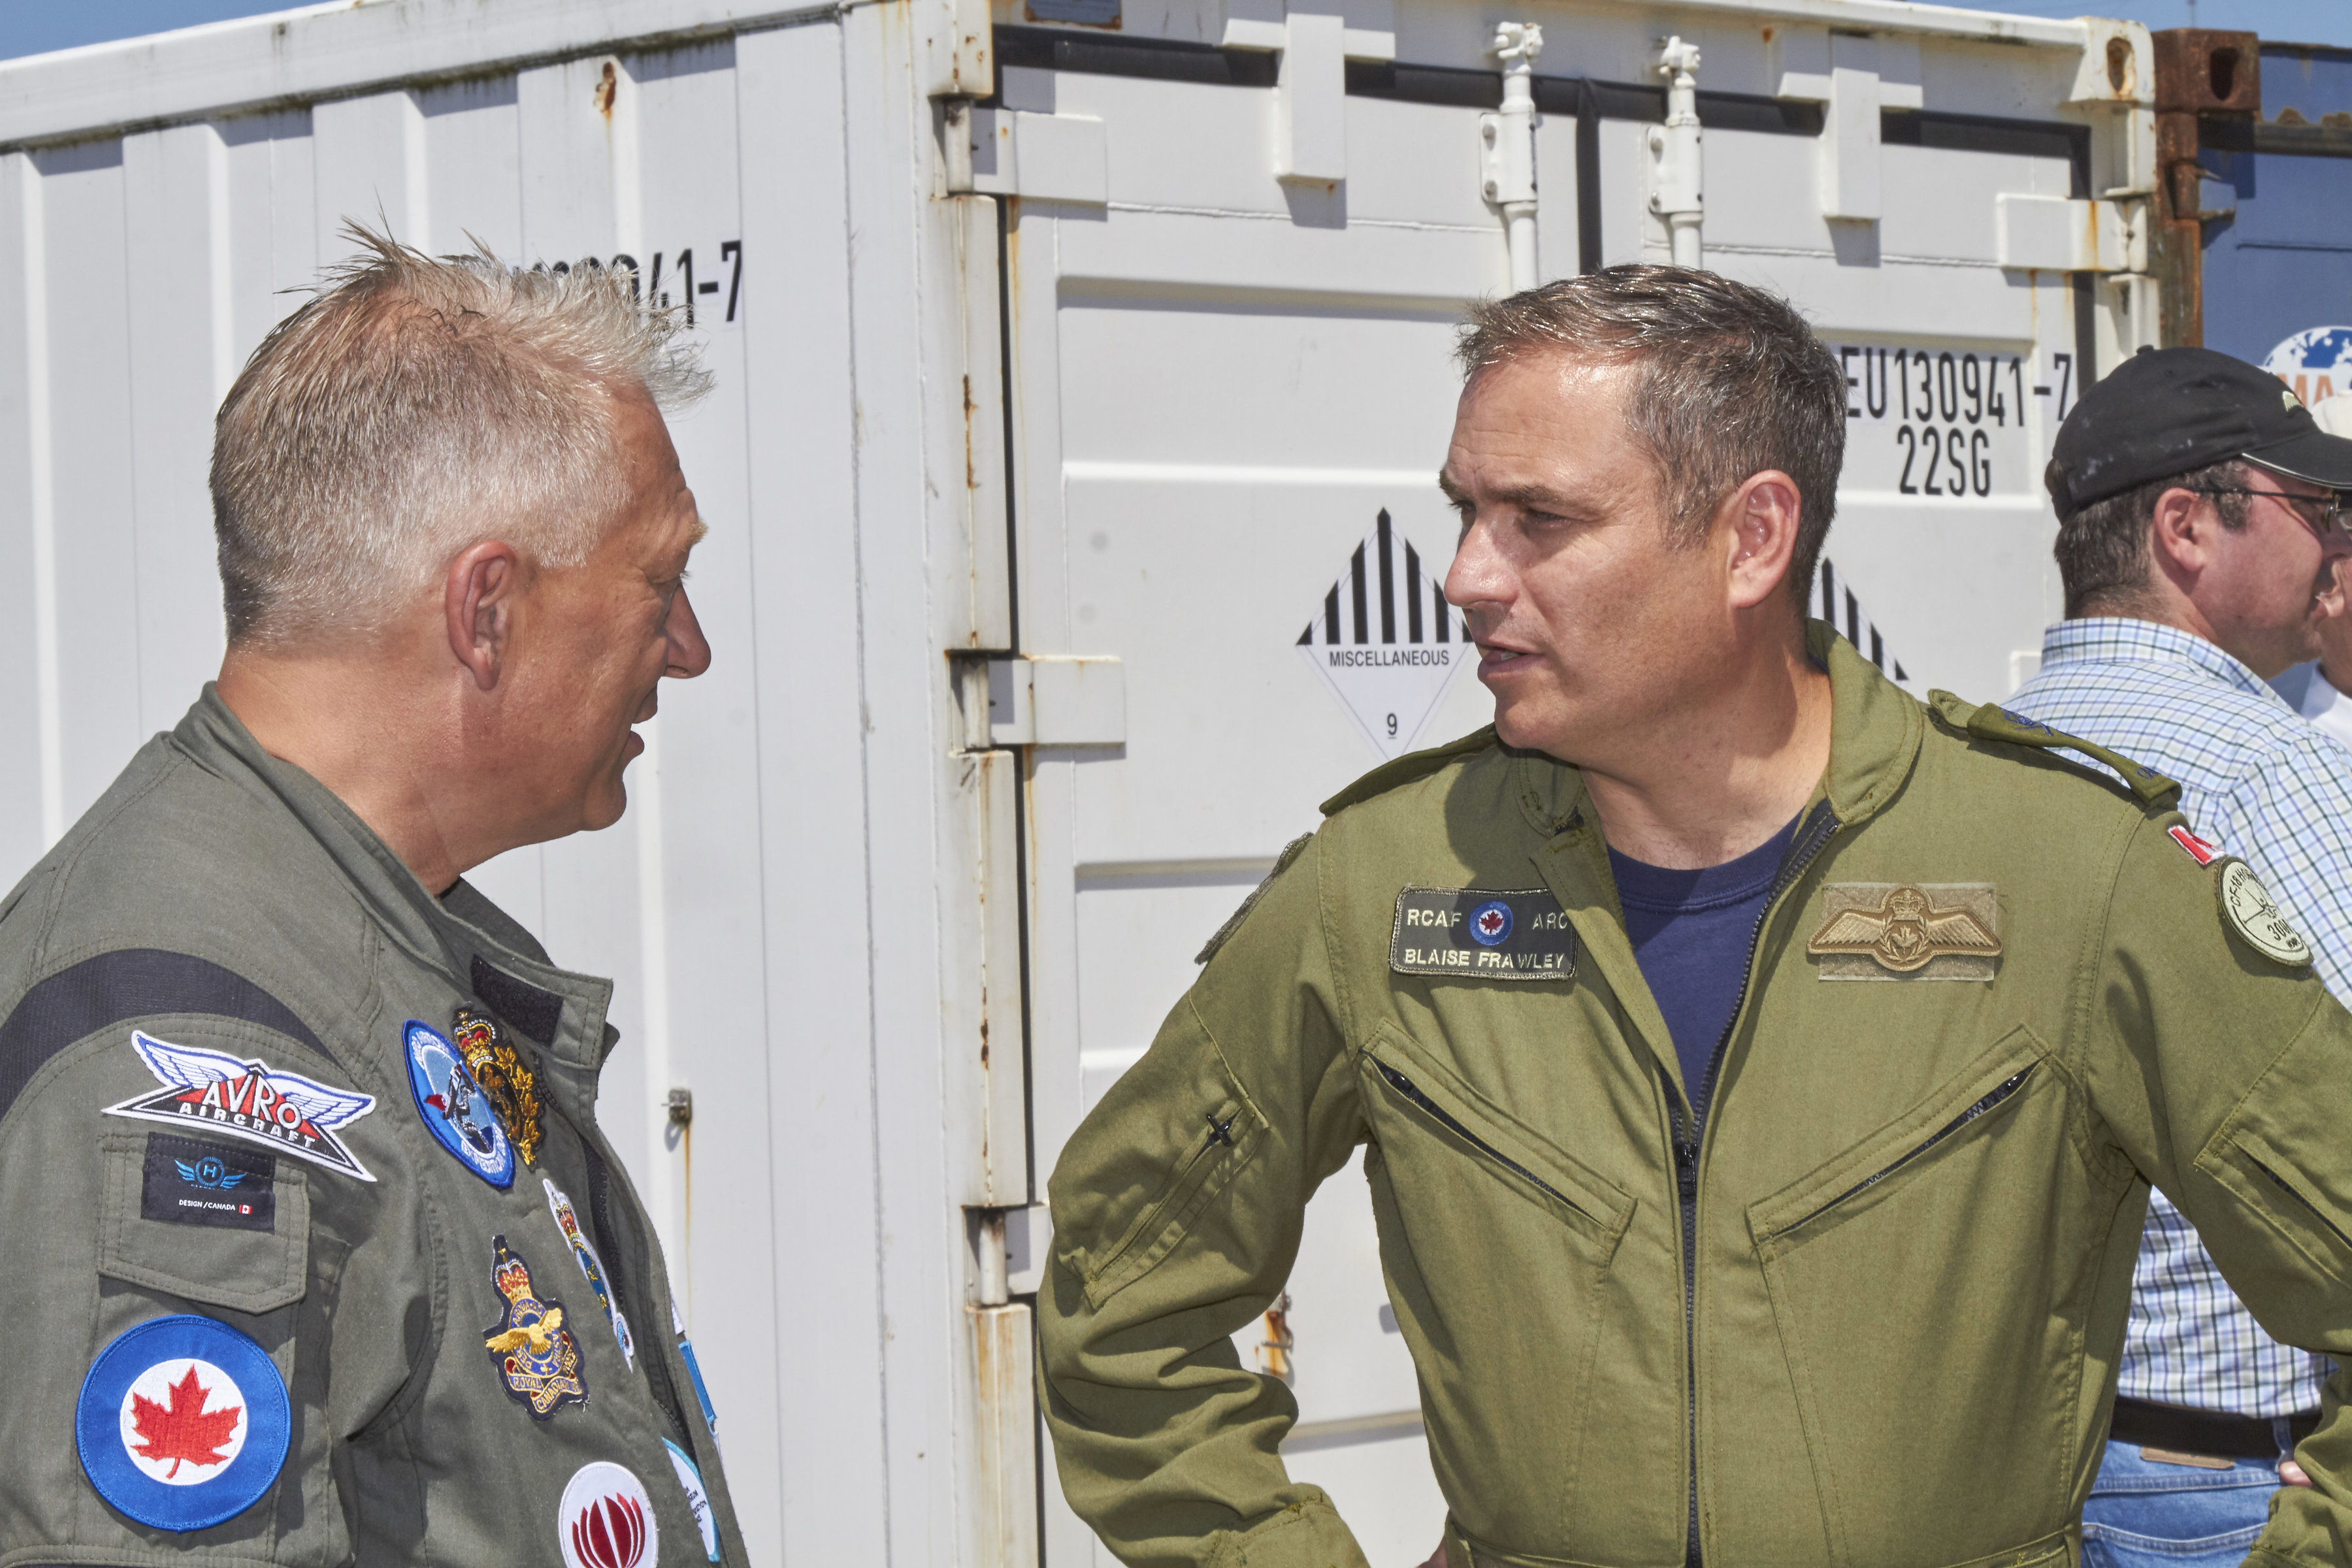 Major-General Blaise Frawley (right), deputy commander of the Royal Canadian Air Force, chats with John Burzynski, OEX Recovery Group Expedition Leader, about the work being done to find scale models of the Avro Arrow in Lake Ontario. PHOTO: Chris Nefs, 9 Yards Photography